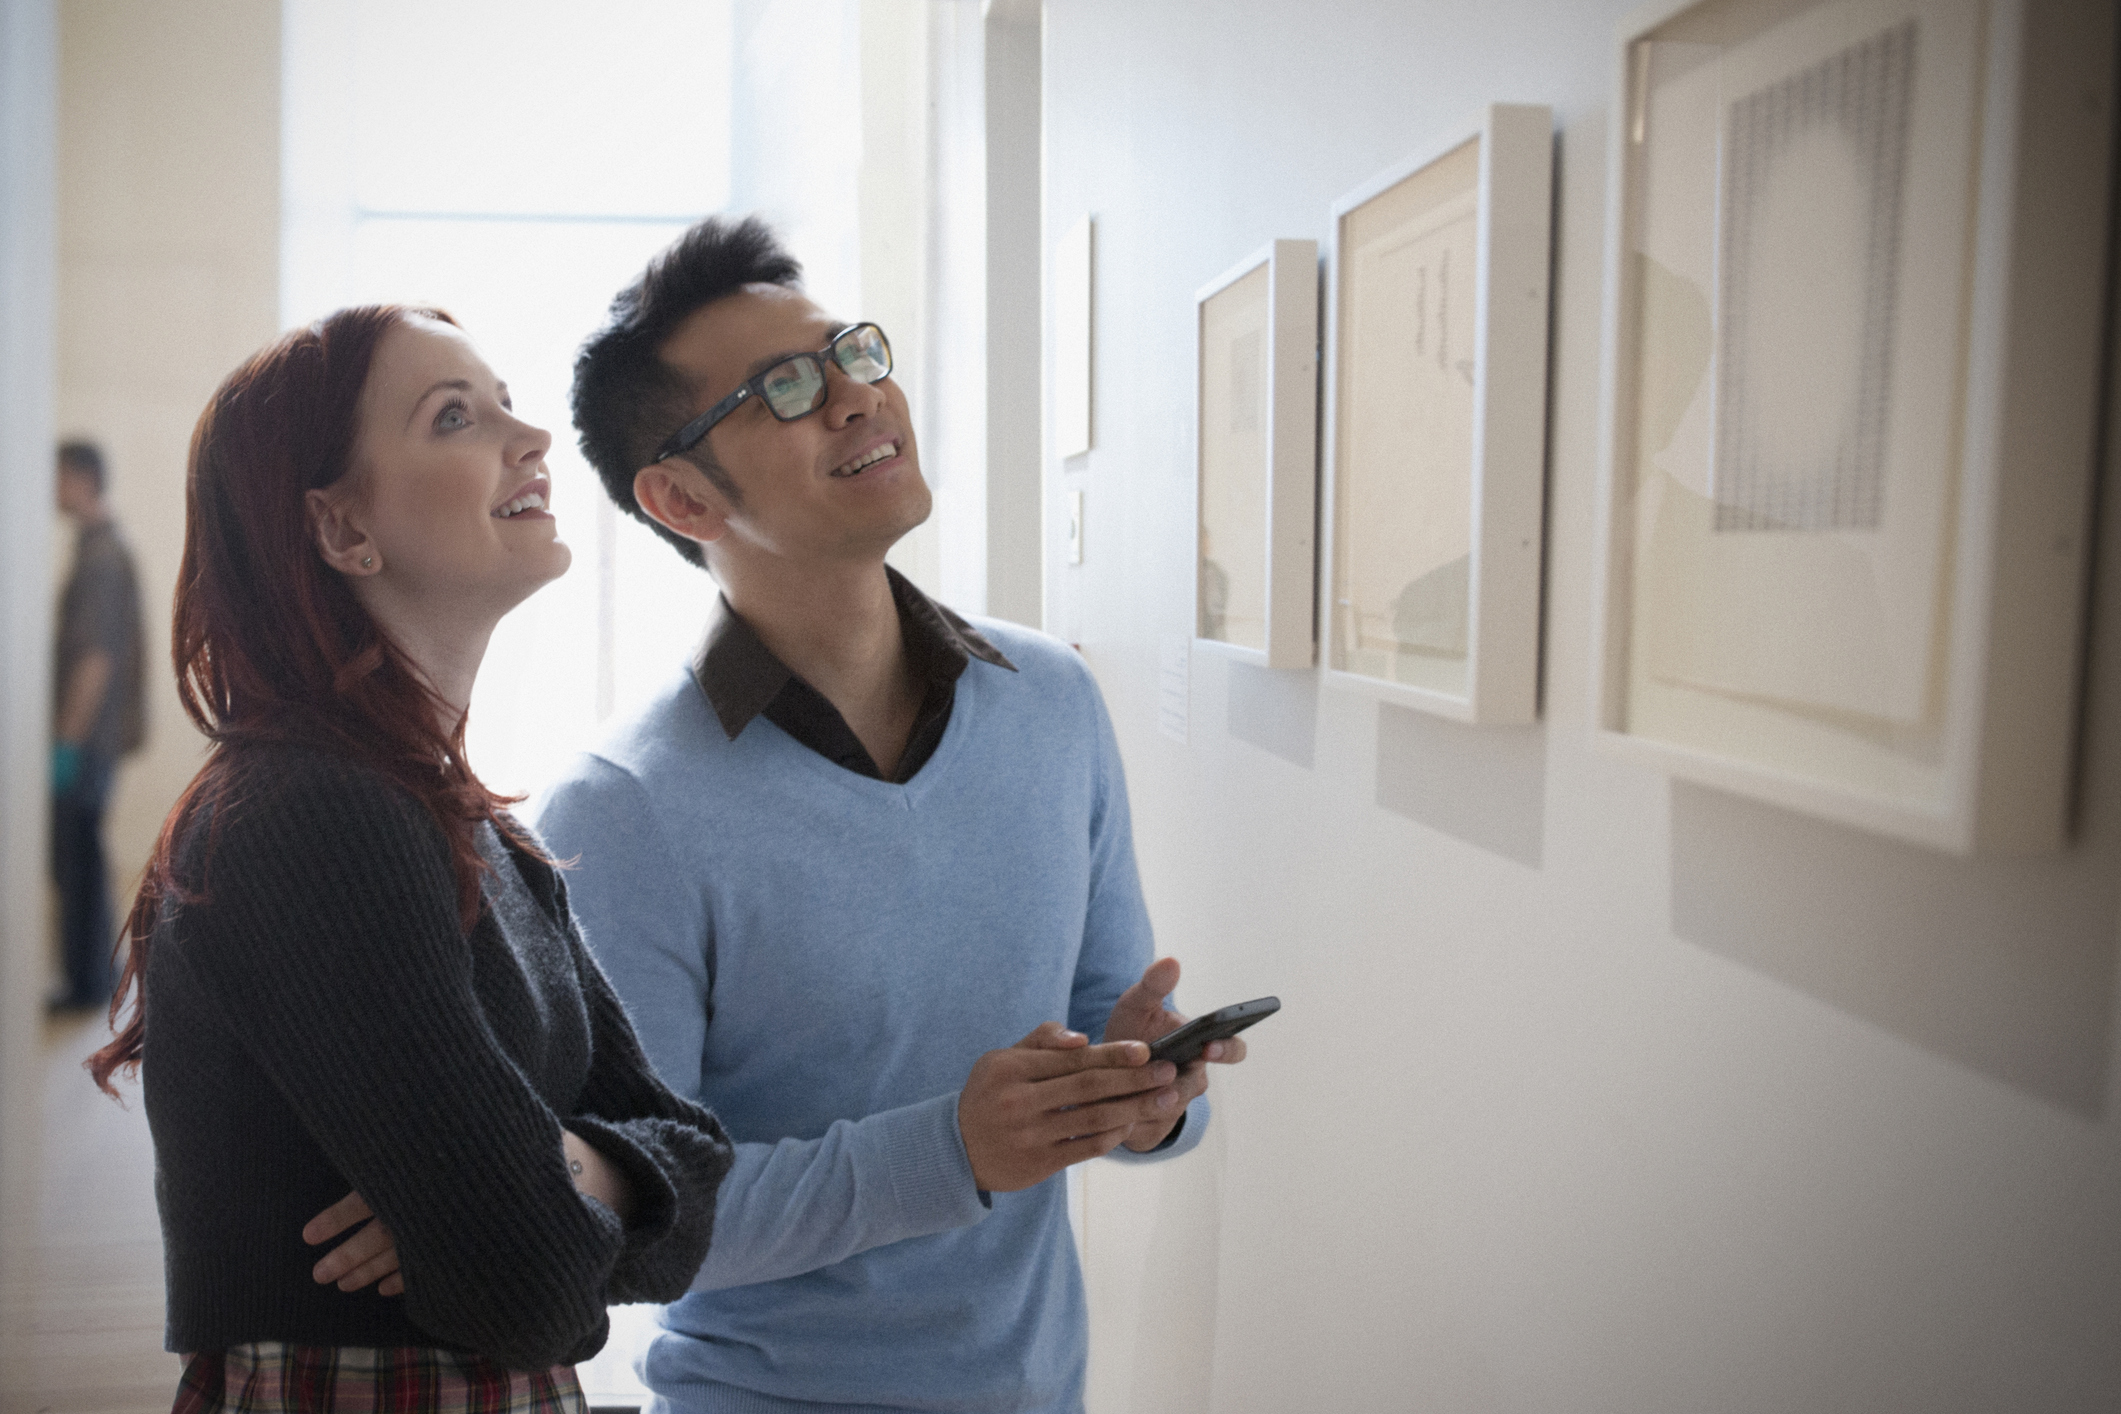 Couple with cell phone admiring artwork in gallery